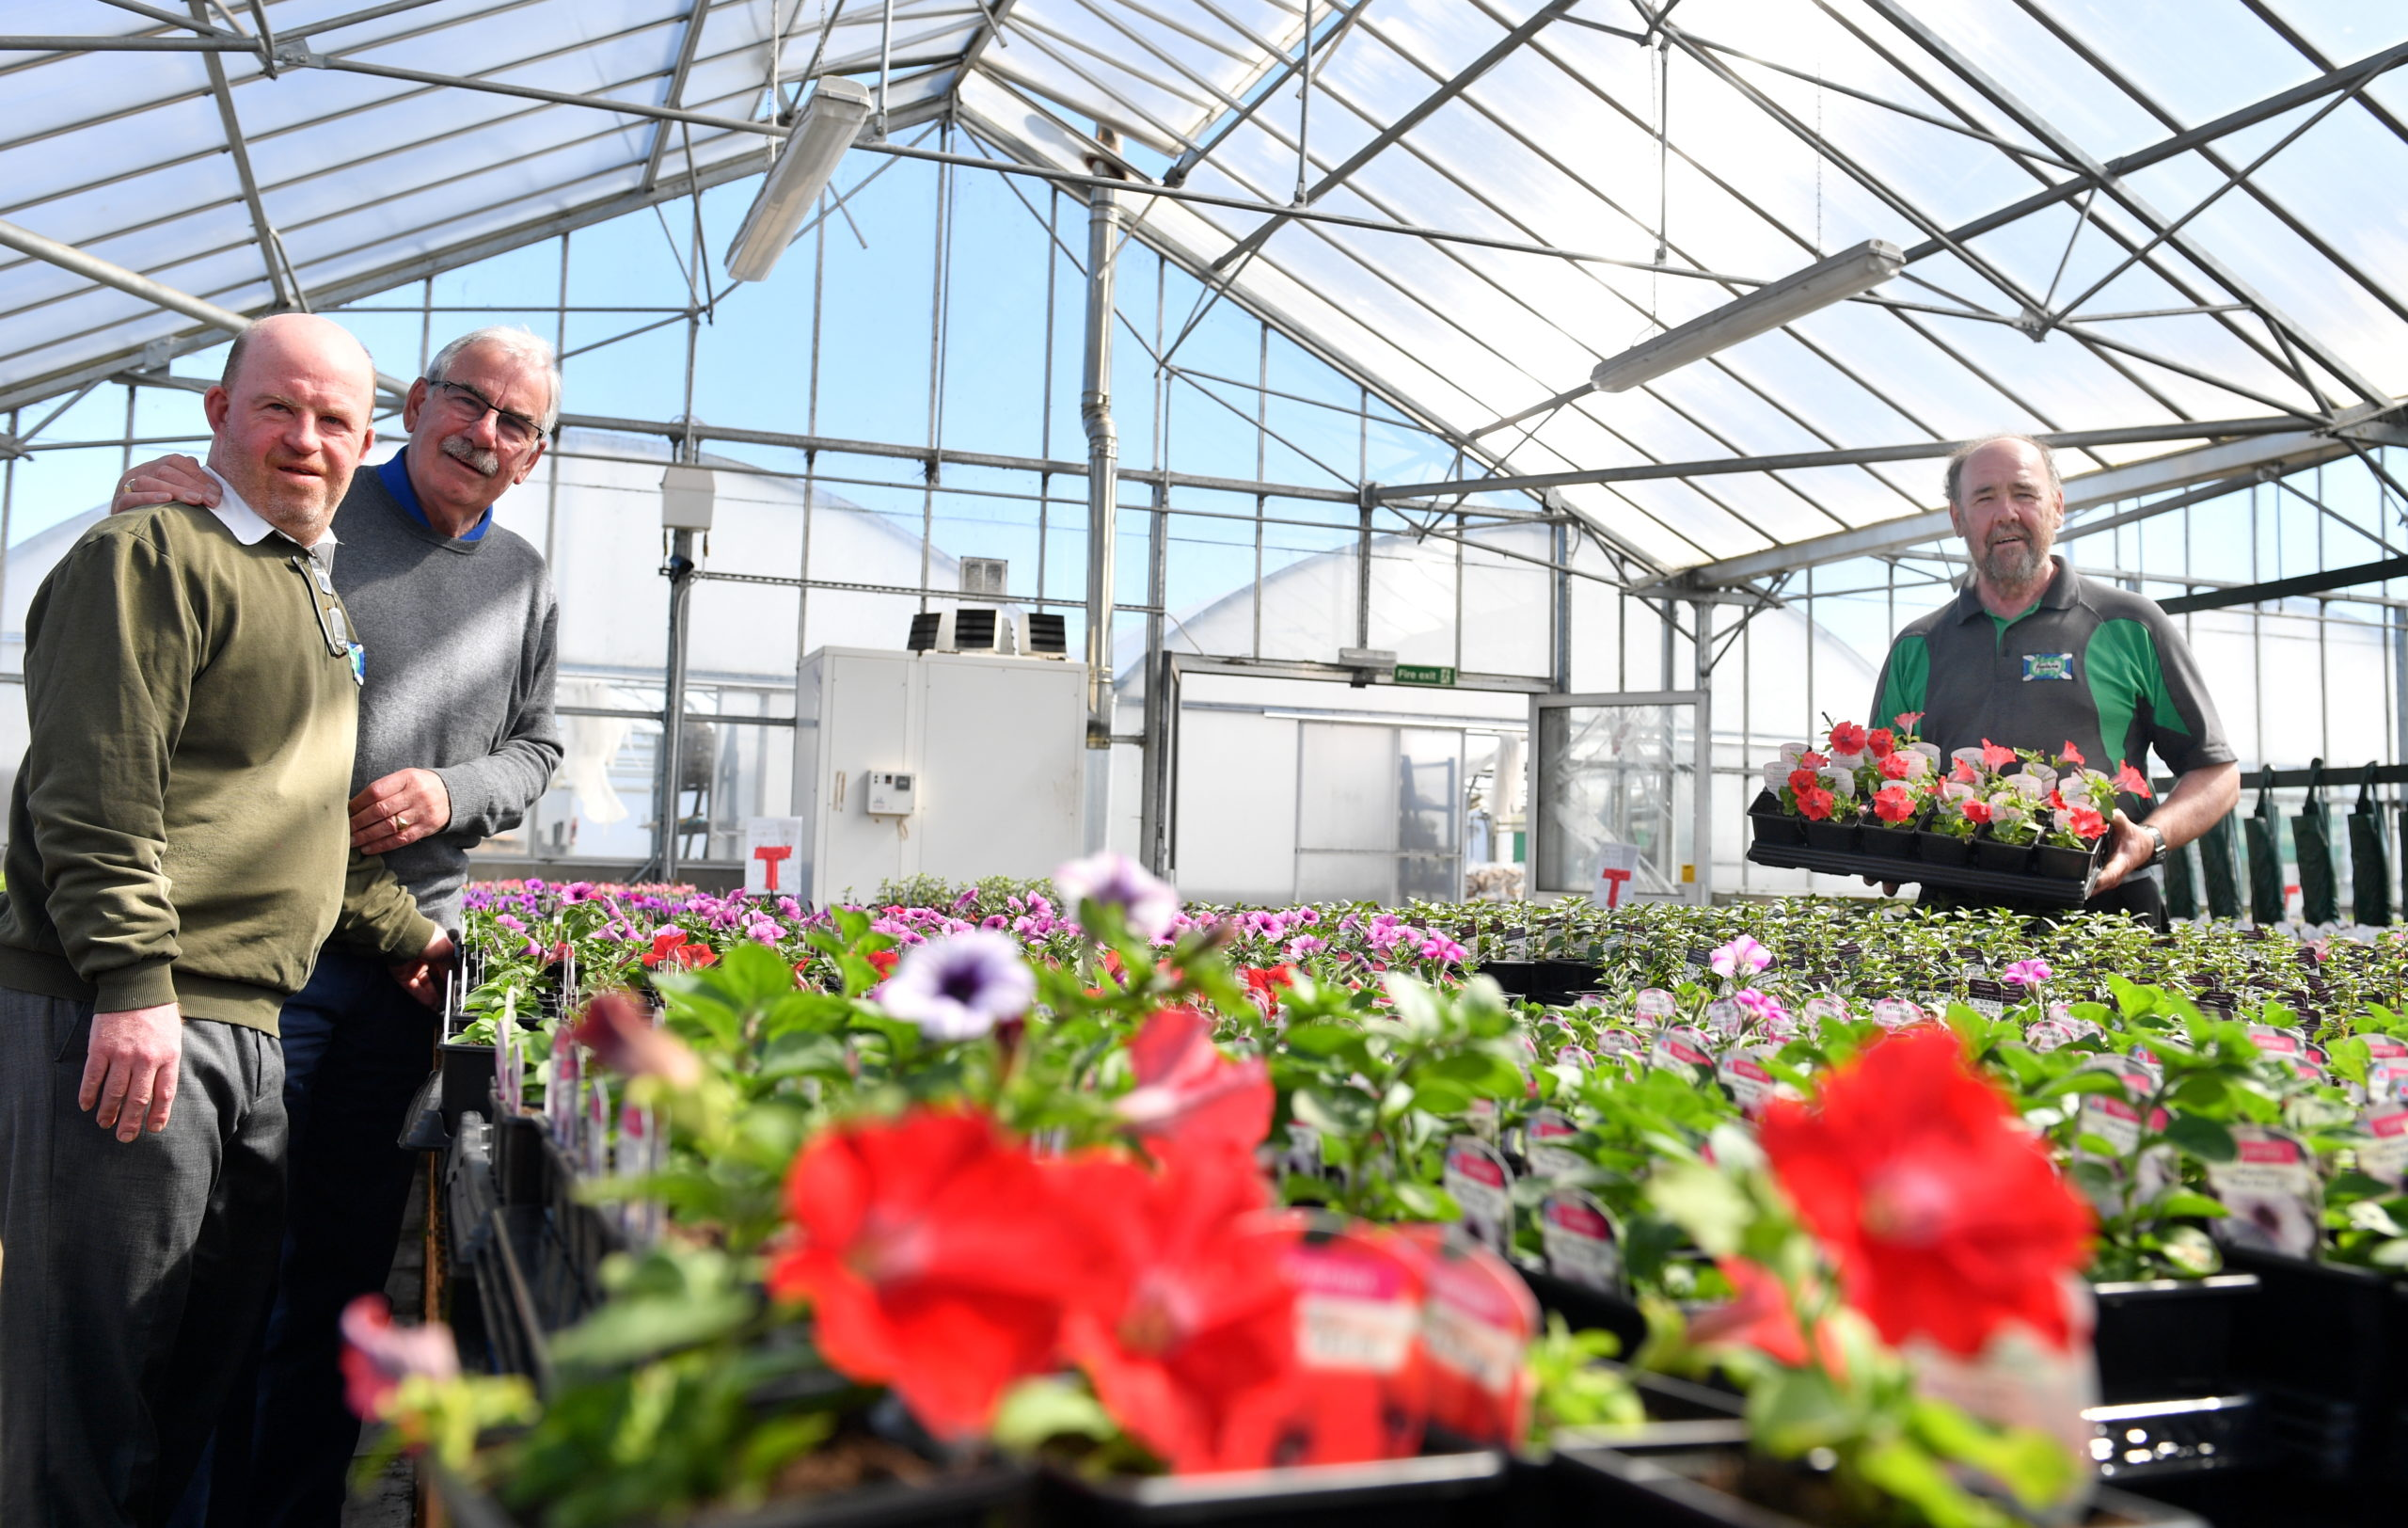 L-R: Andrew with his father Alan Milton in the greenhouse at Foxlane and Foxlane owner Gordon Henderson: Picture by Kami Thomson